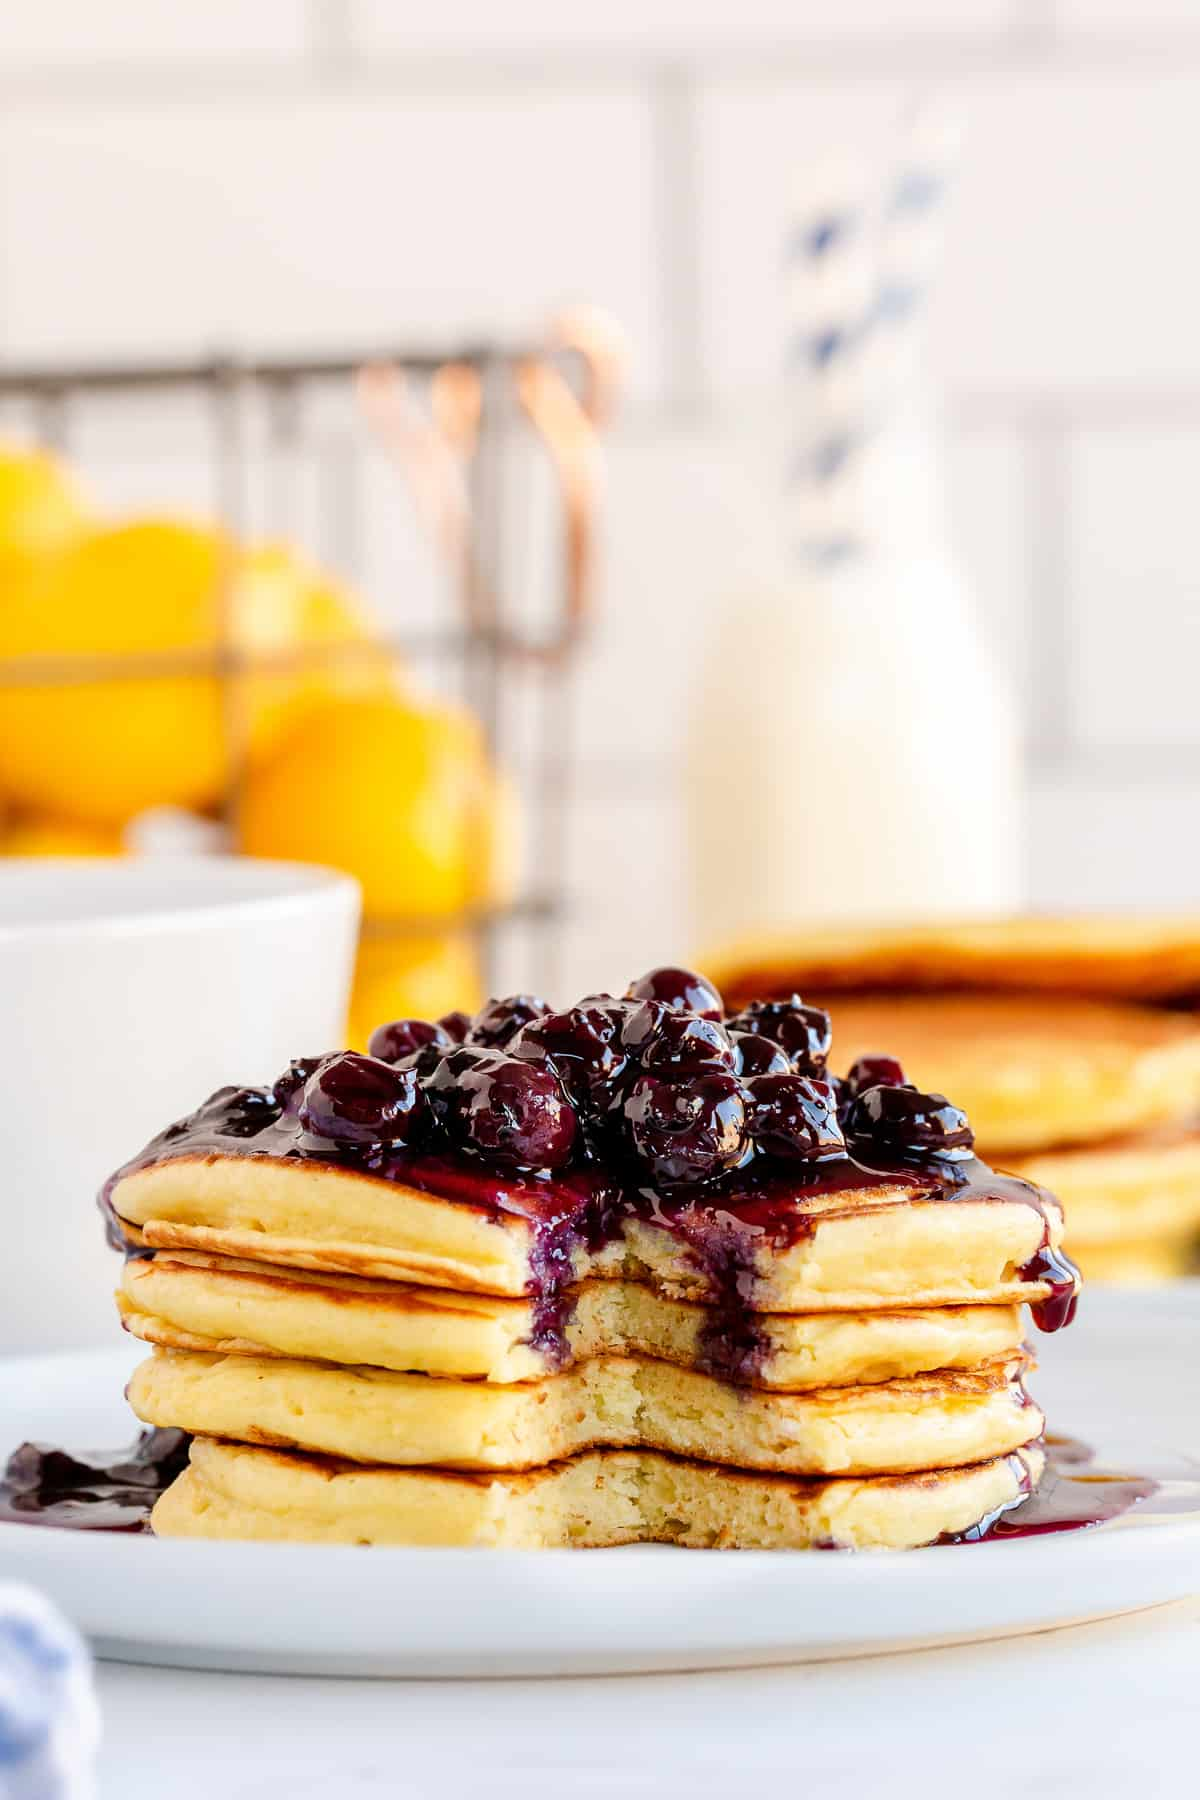 A stack of pancakes topped with blueberry sauce with lemons in the background.